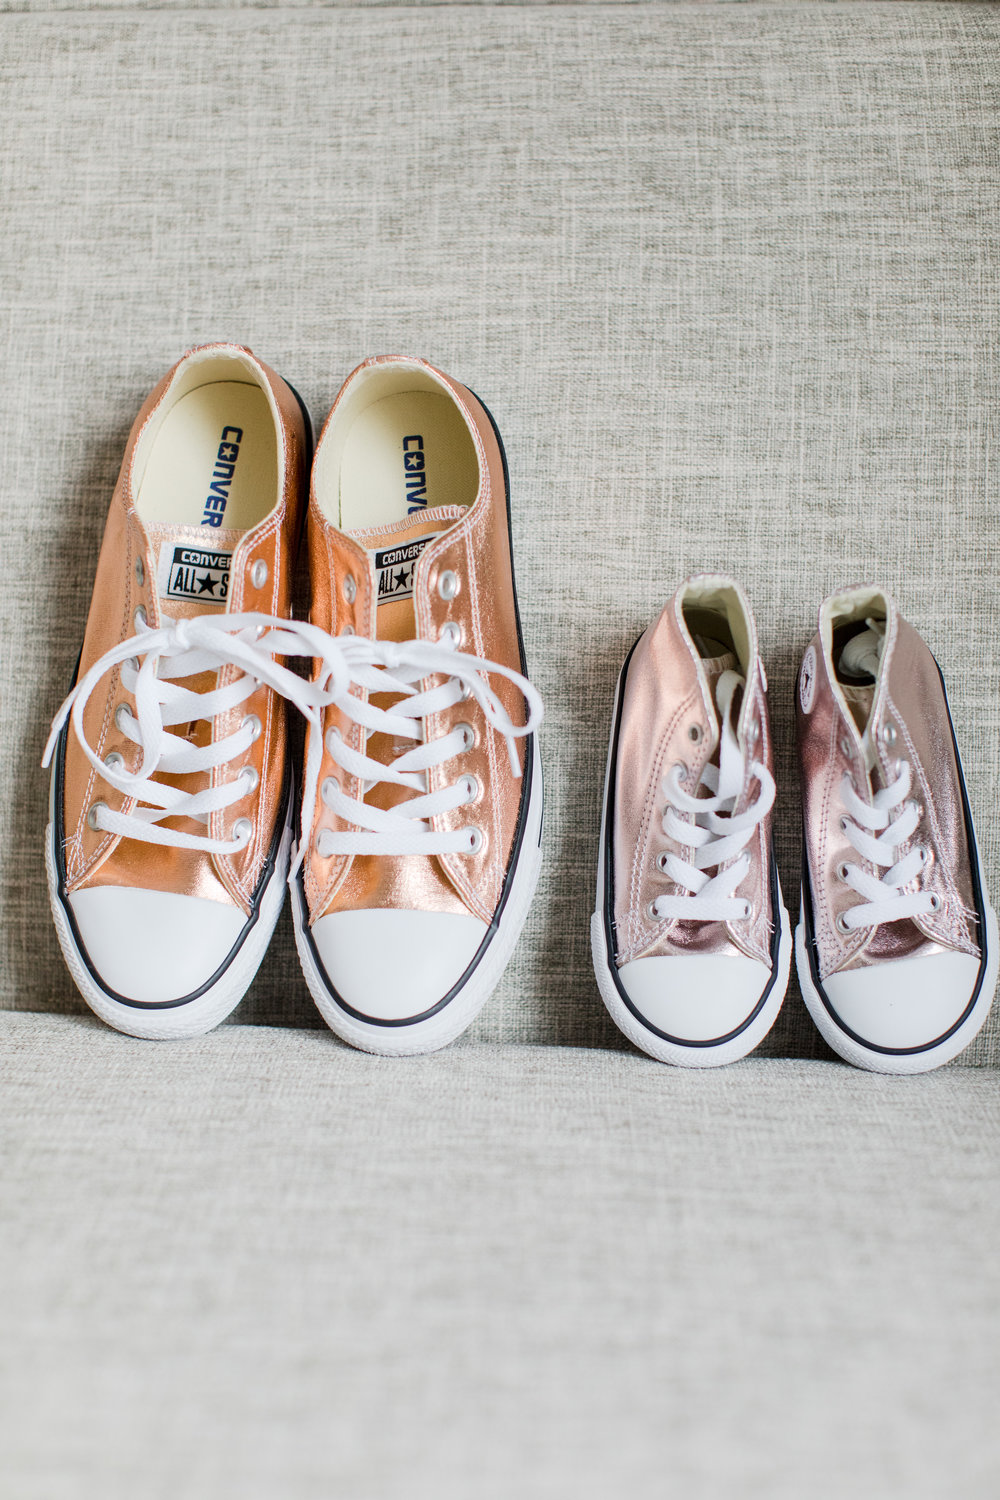 Bride and flower girl rose gold converse wedding shoes.